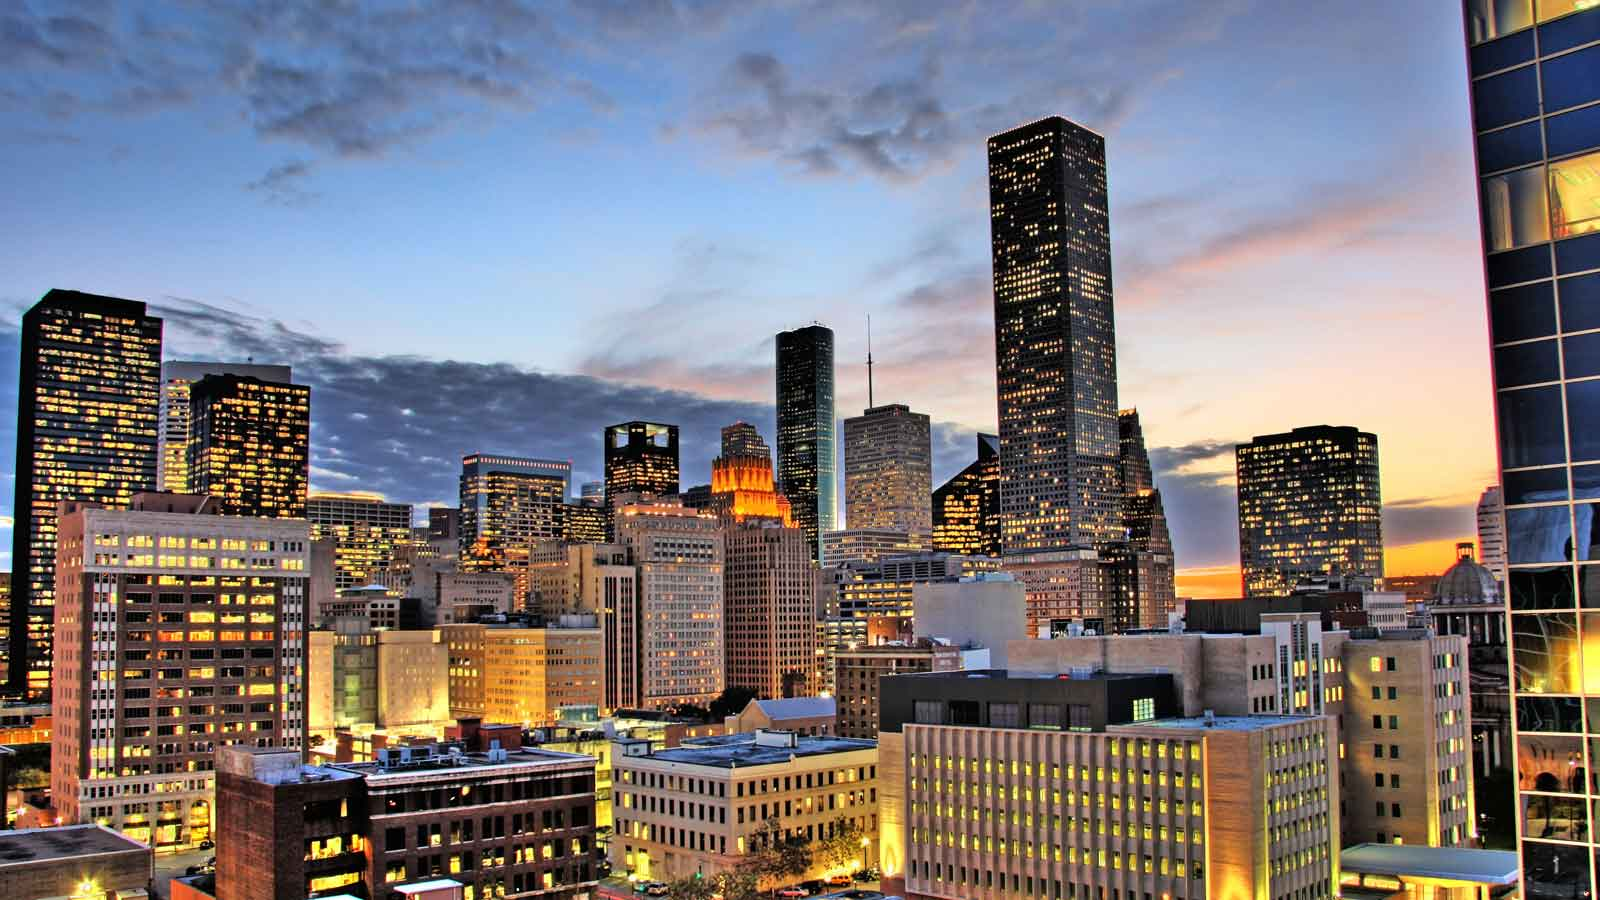 Skyline Cityscape photograph of Houston Texas Downtown at Dusk